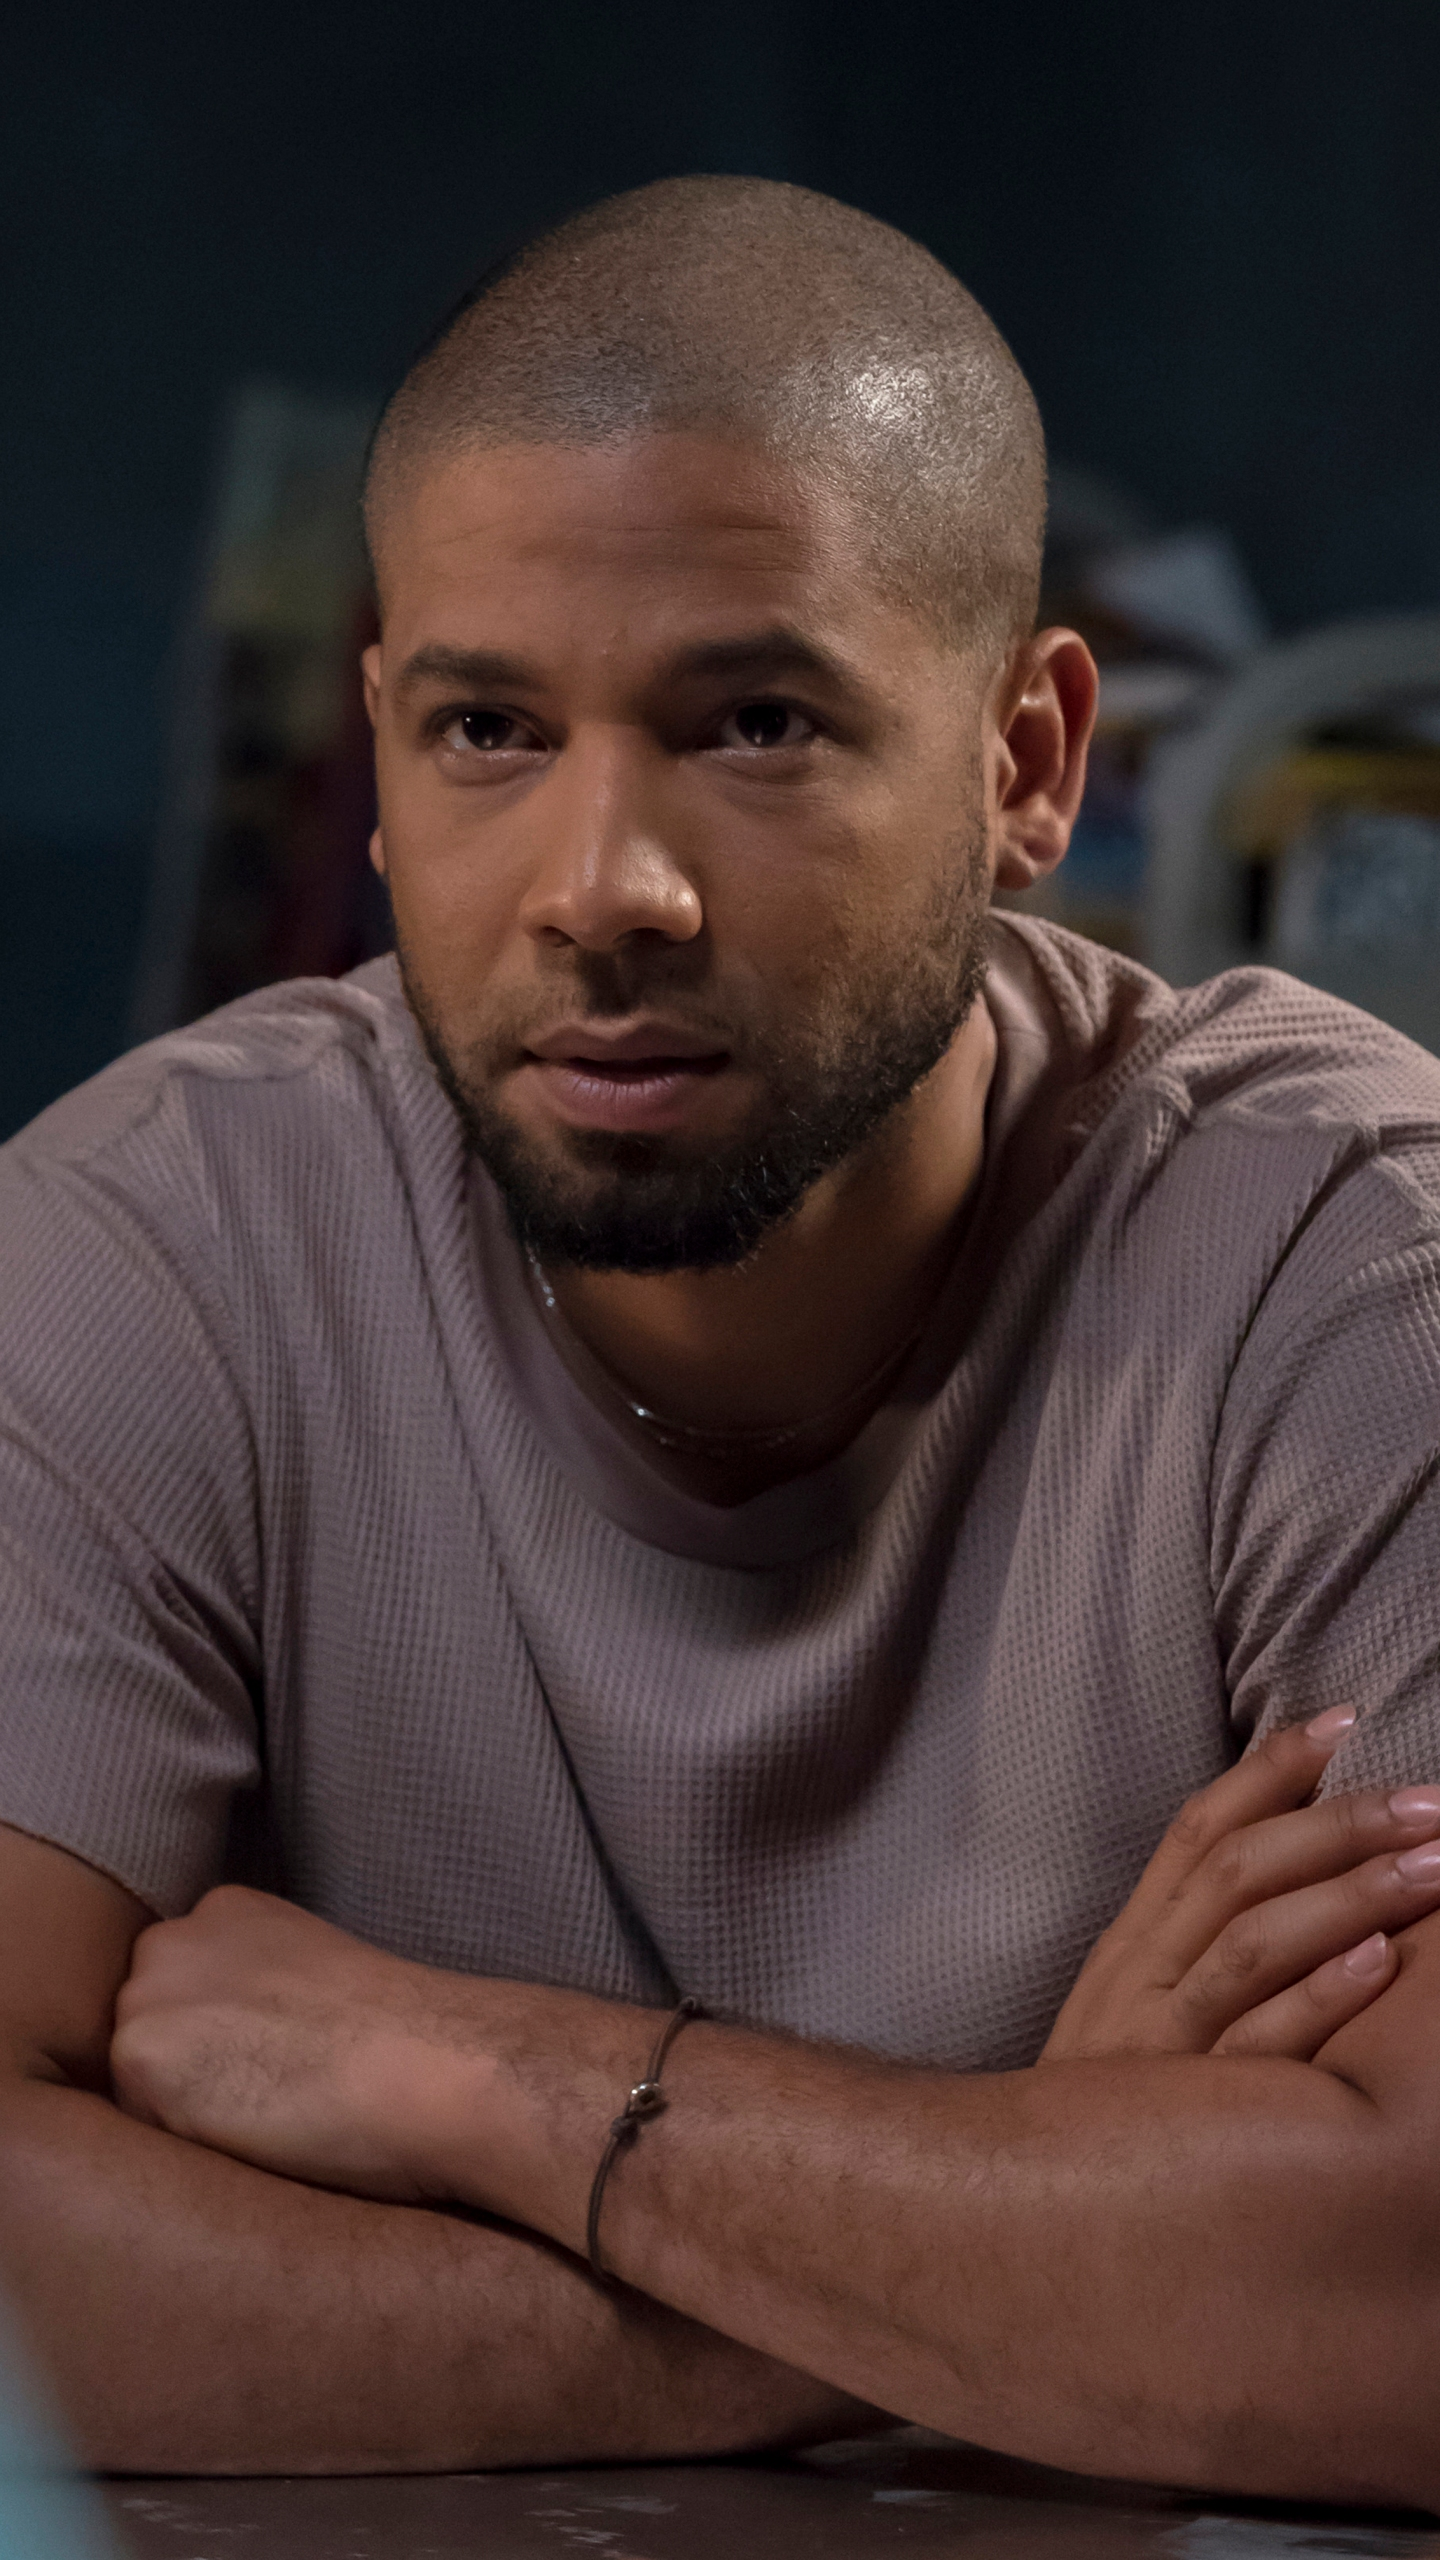 Jussie_Smollett-Career_13721-159532.jpg66174825